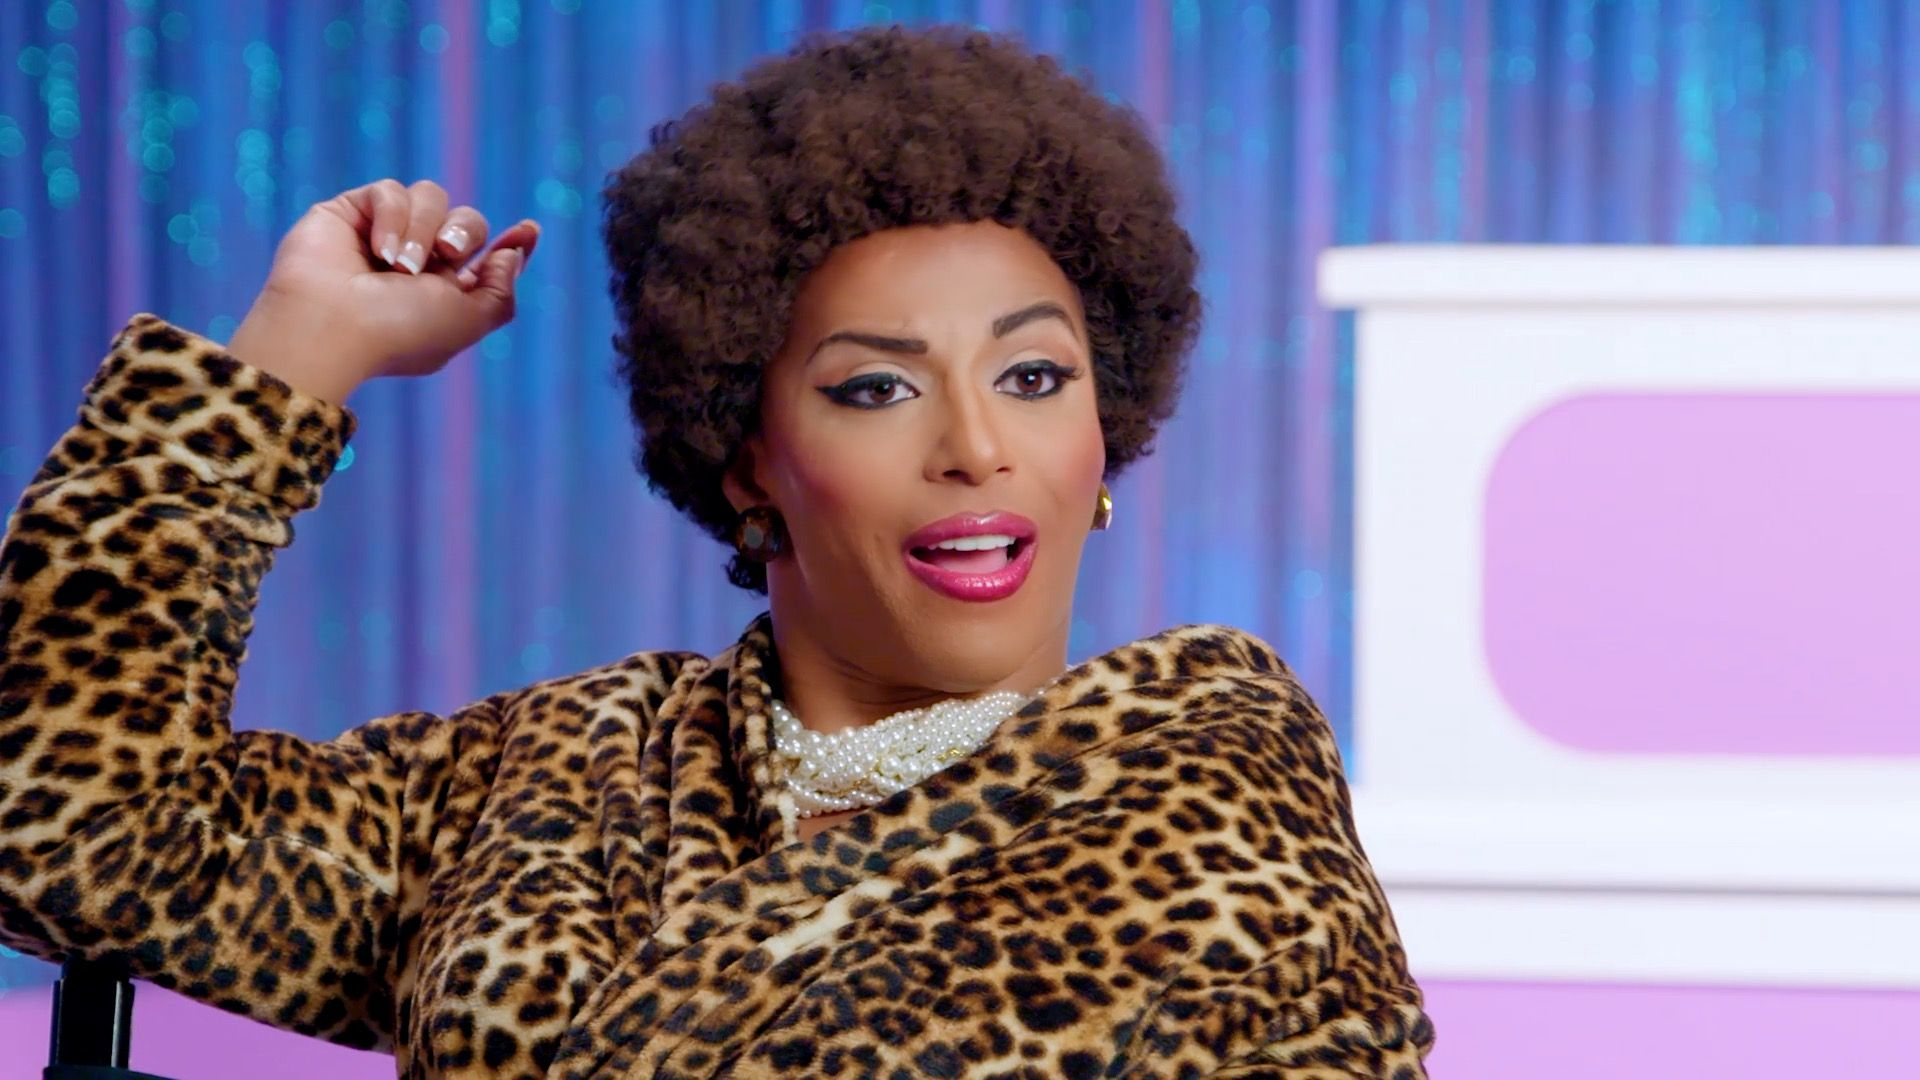 shangela interview jenifer lewis